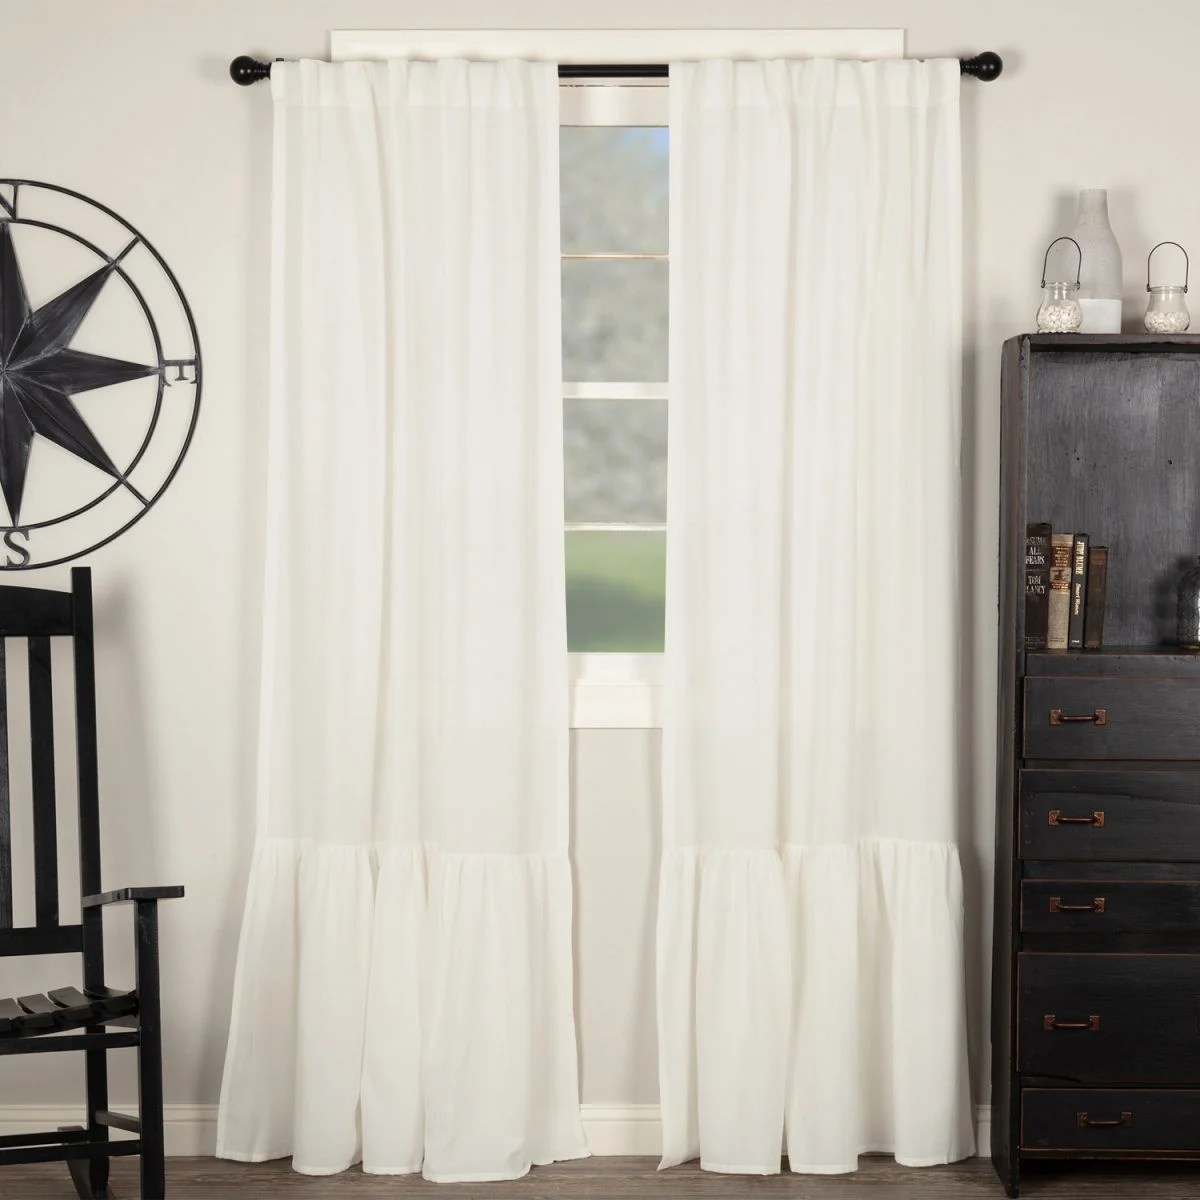 Ruffle Curtain Panel Annabelle High Ruffle Panels 84